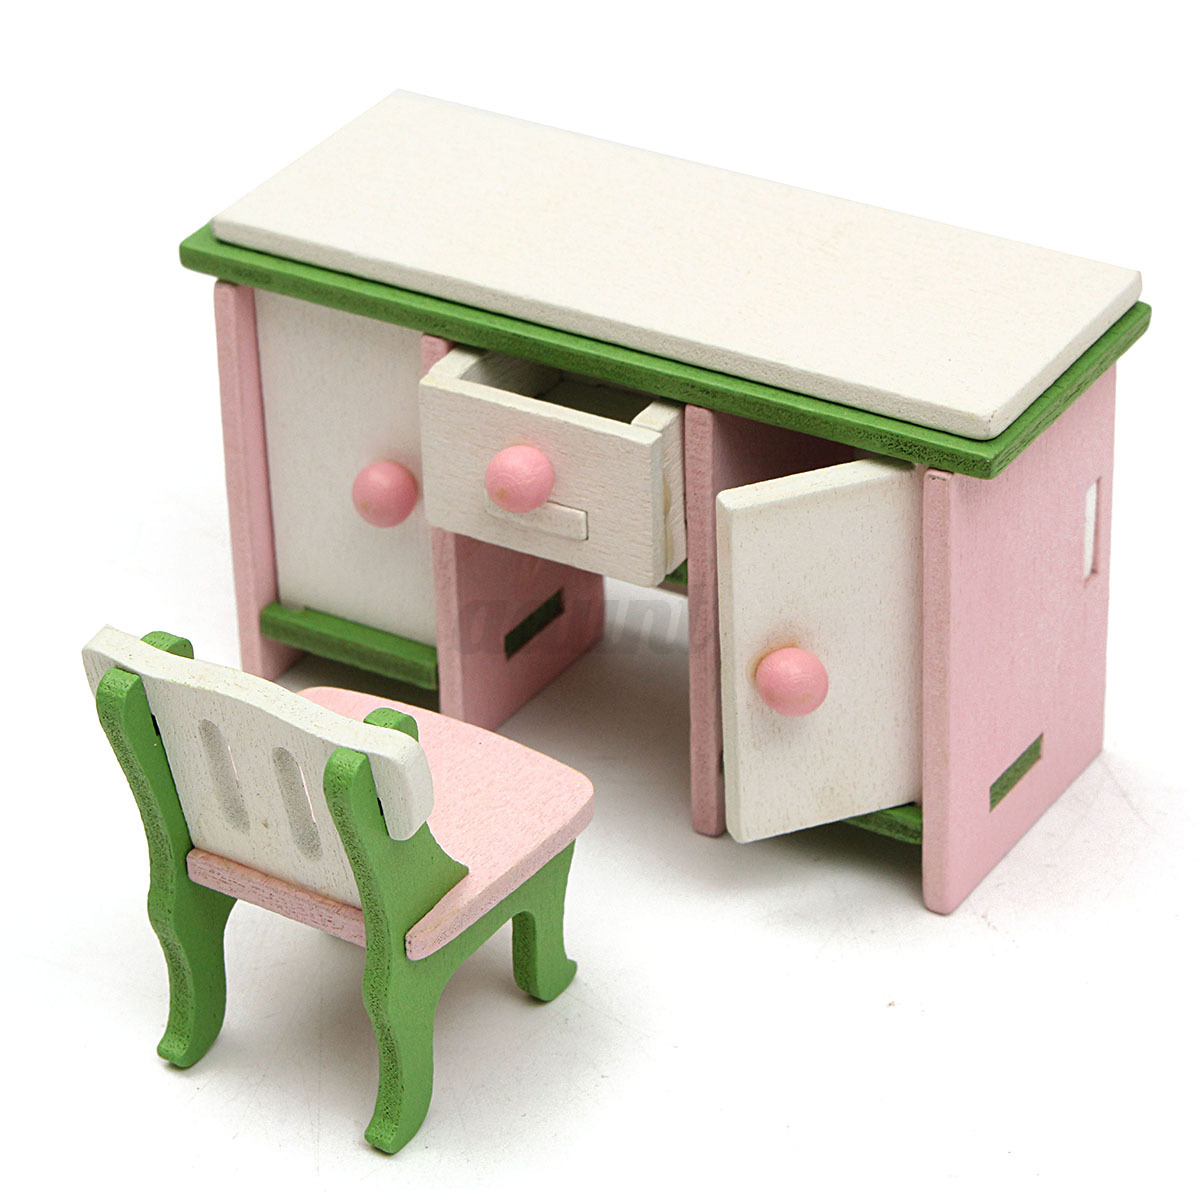 Wooden Doll House Miniature Bedroom Furniture Set Families Role Play Toys Gift Auctions Buy